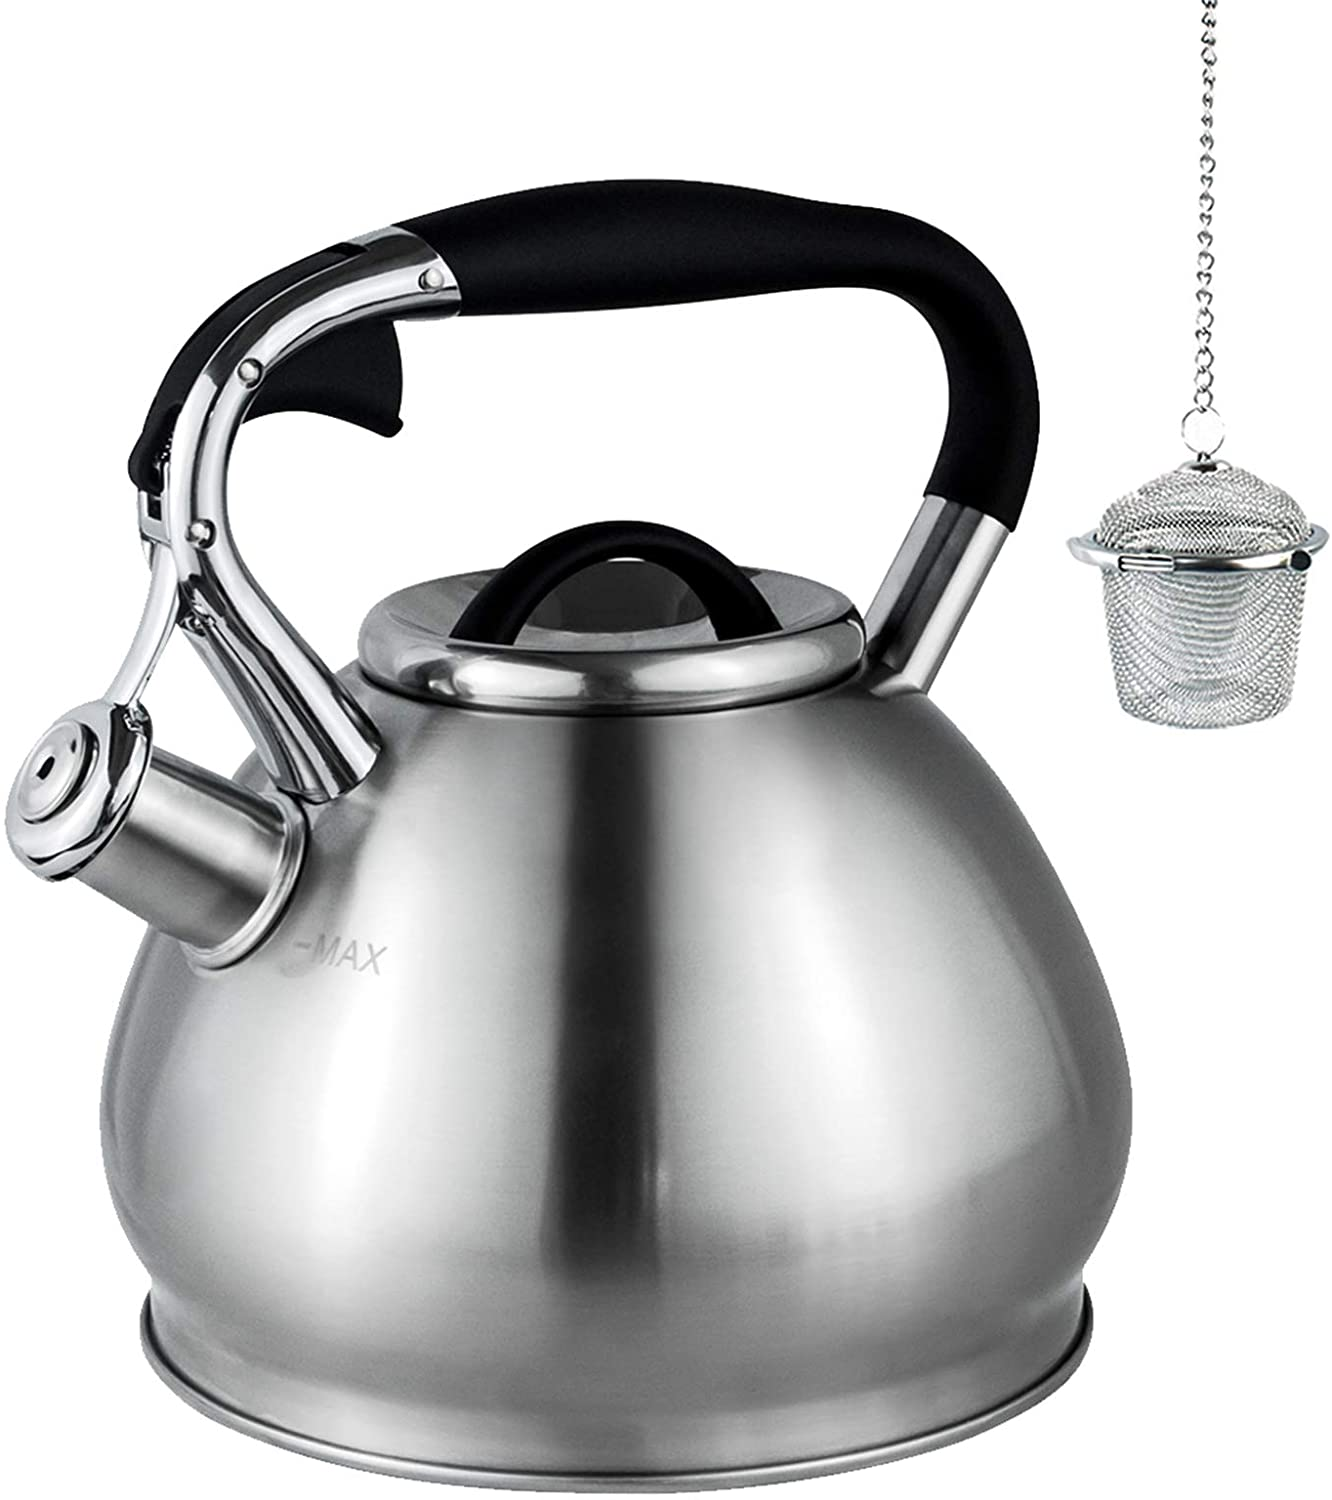 Whistling Tea Kettles Stovetop with Boils